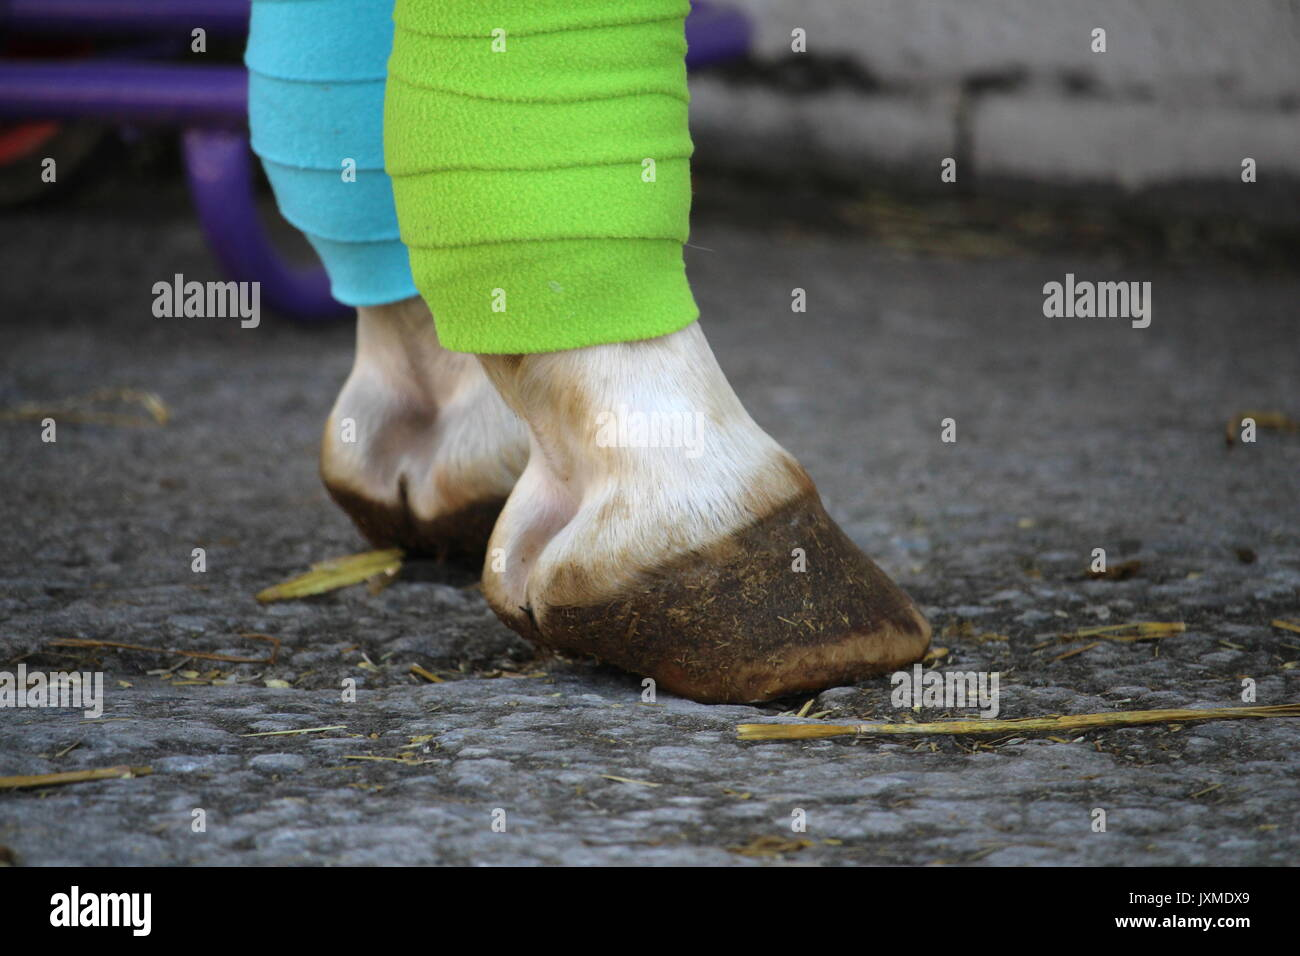 Two green and blue bandages on white horse's legs - Stock Image